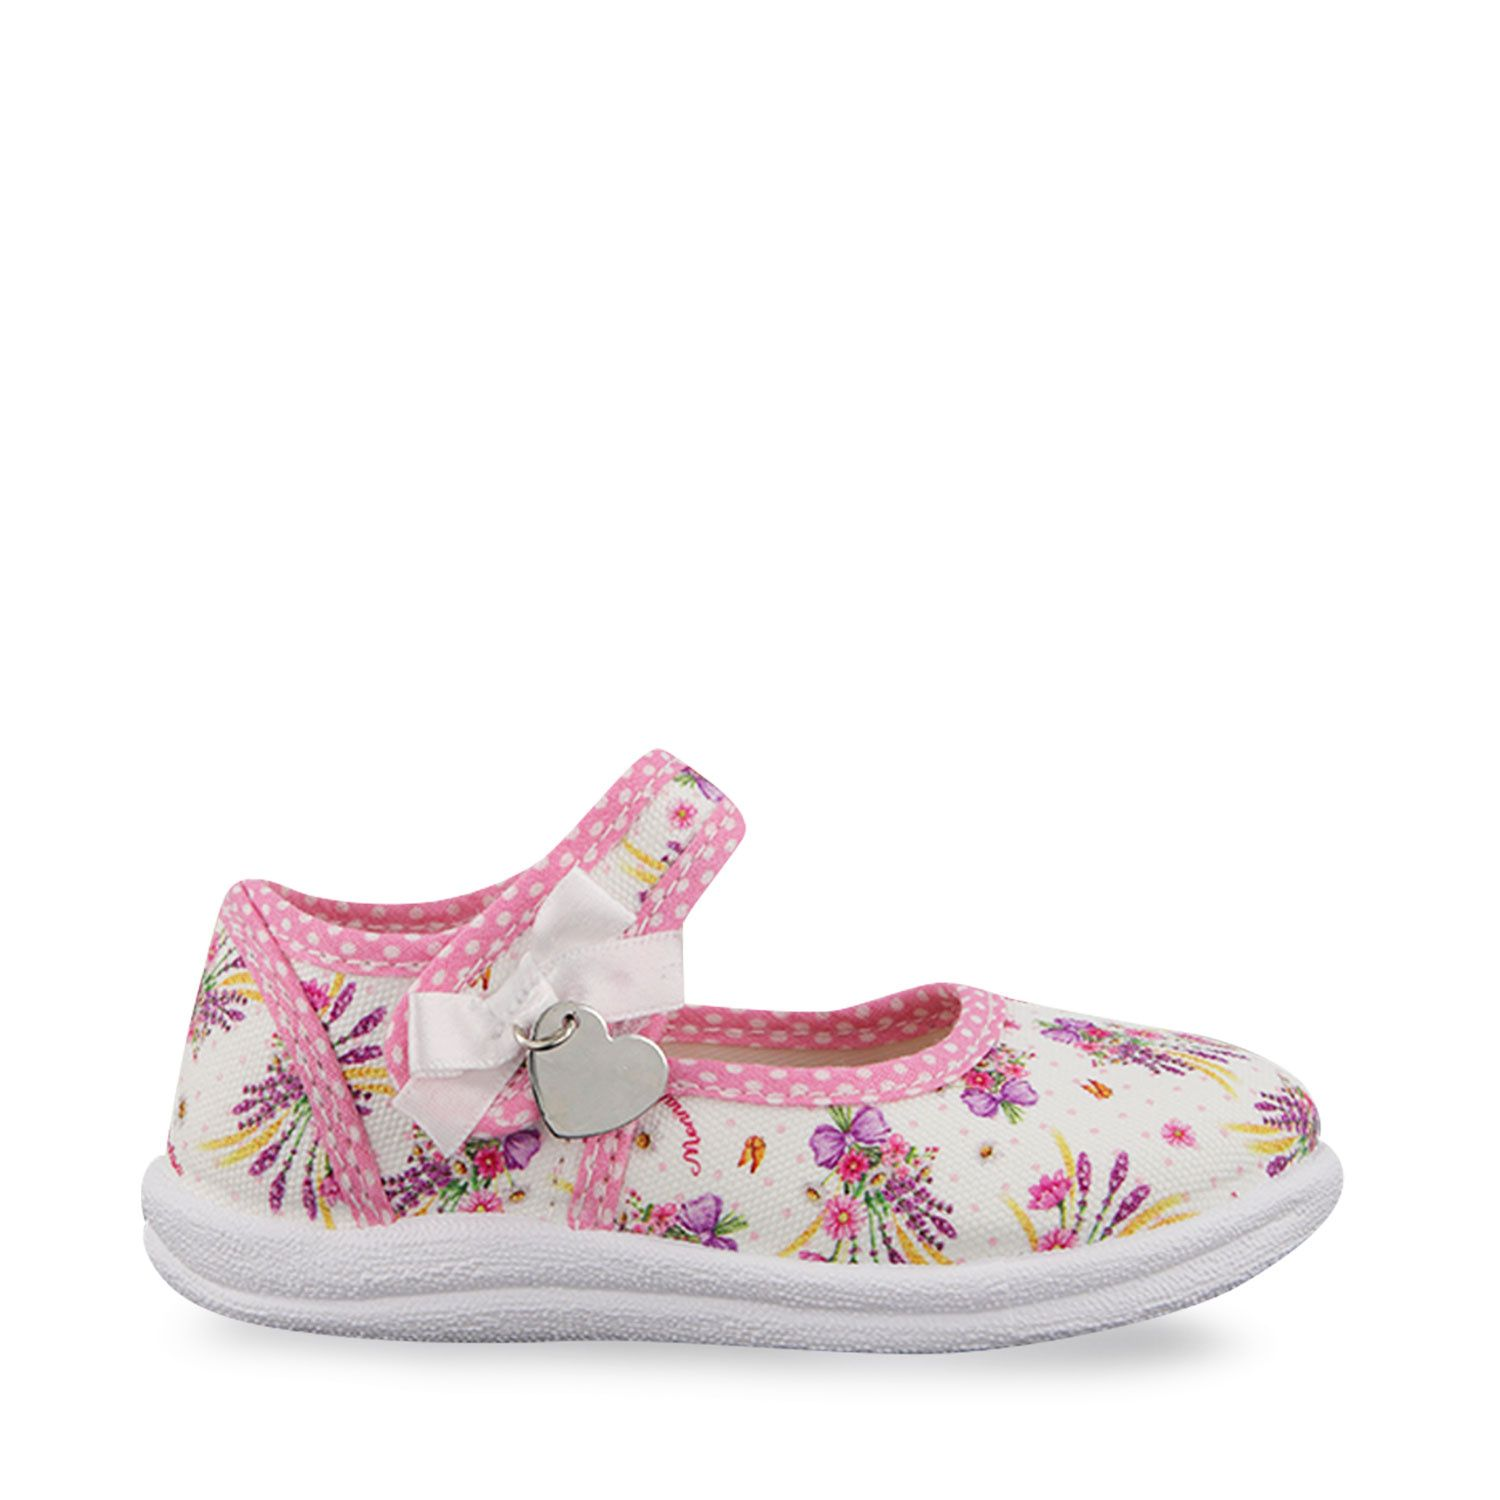 Picture of MonnaLisa 837015 kids shoes pink